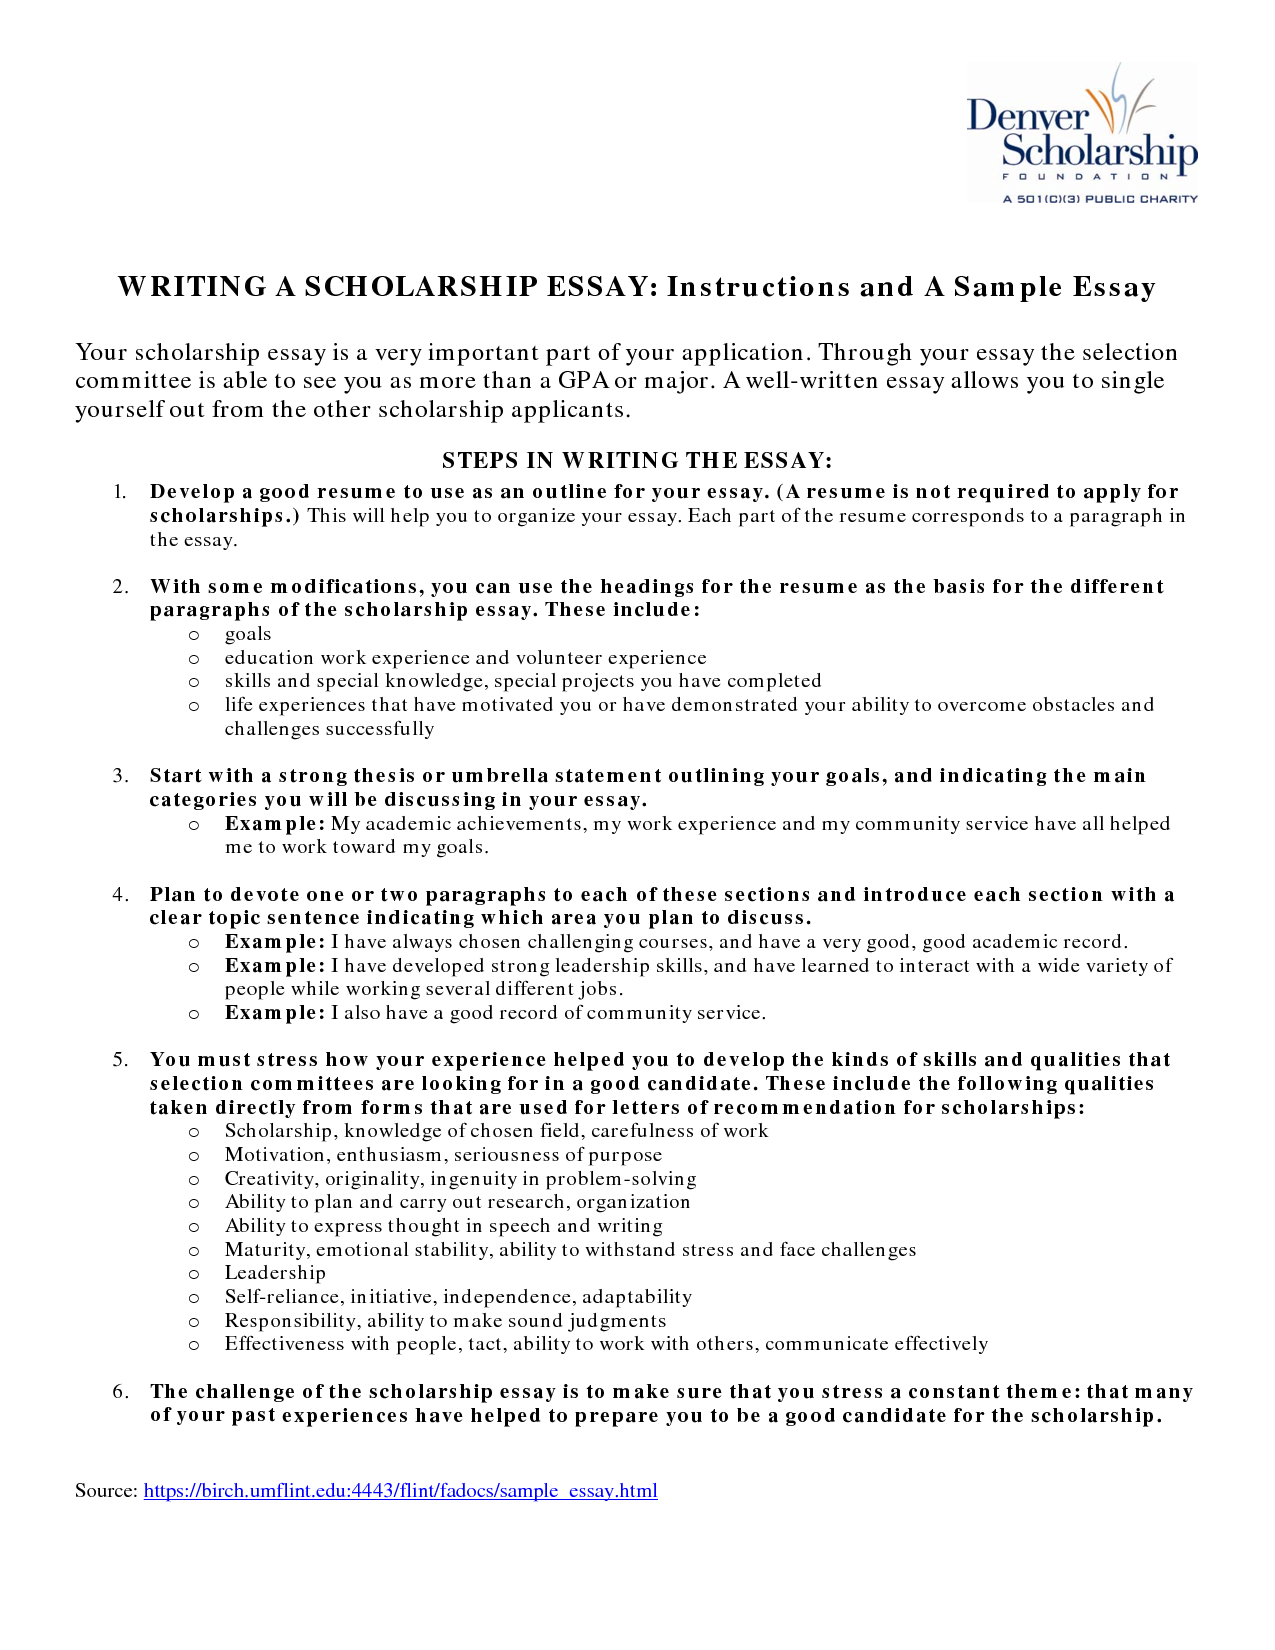 Aba Form Music Definition Essay